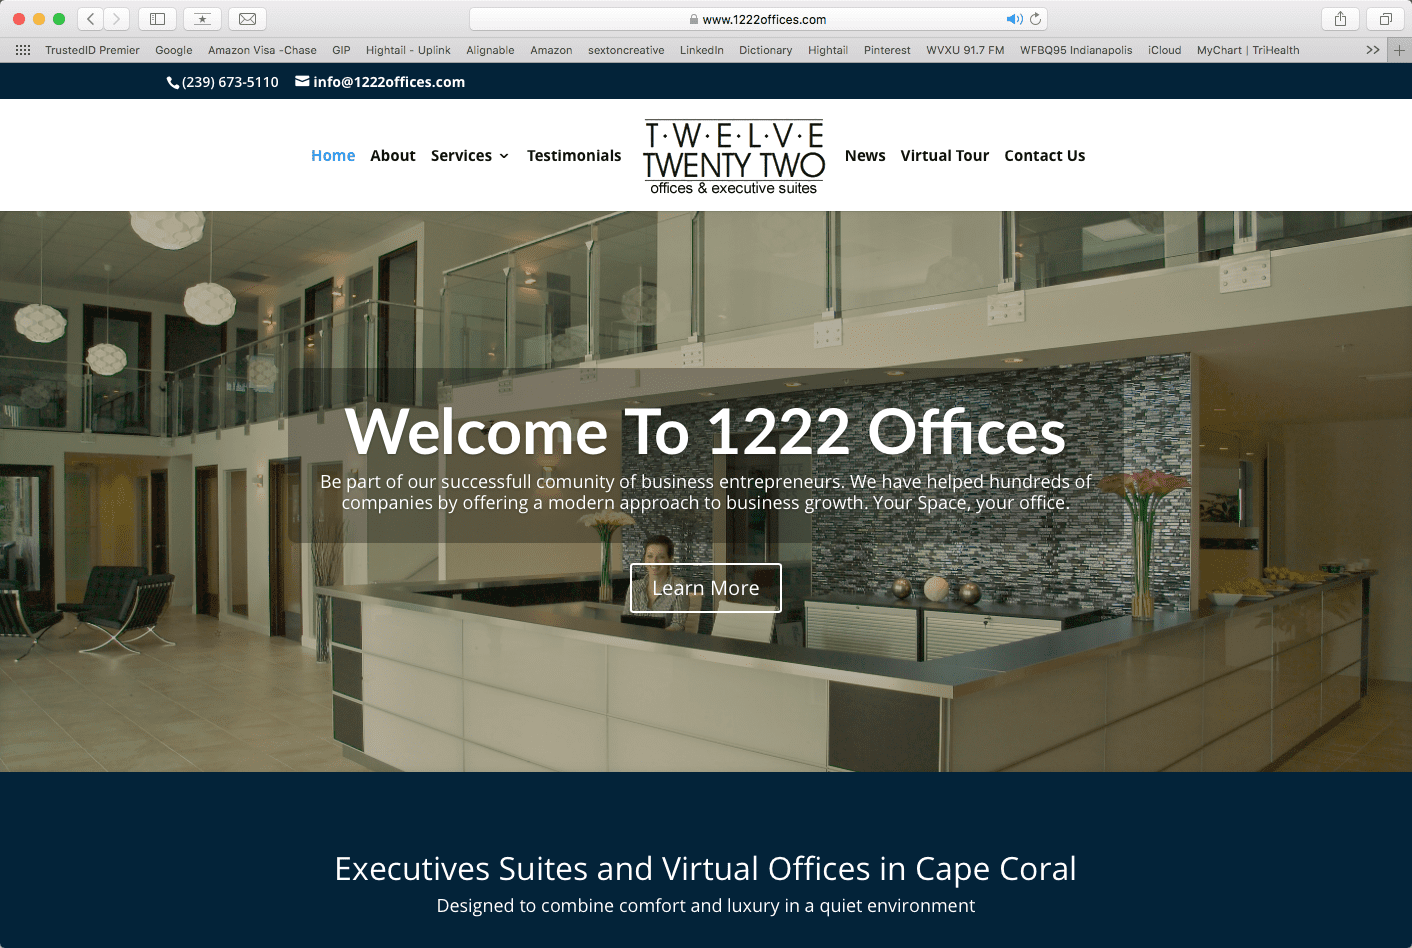 Executive Suites & Virtual Offices